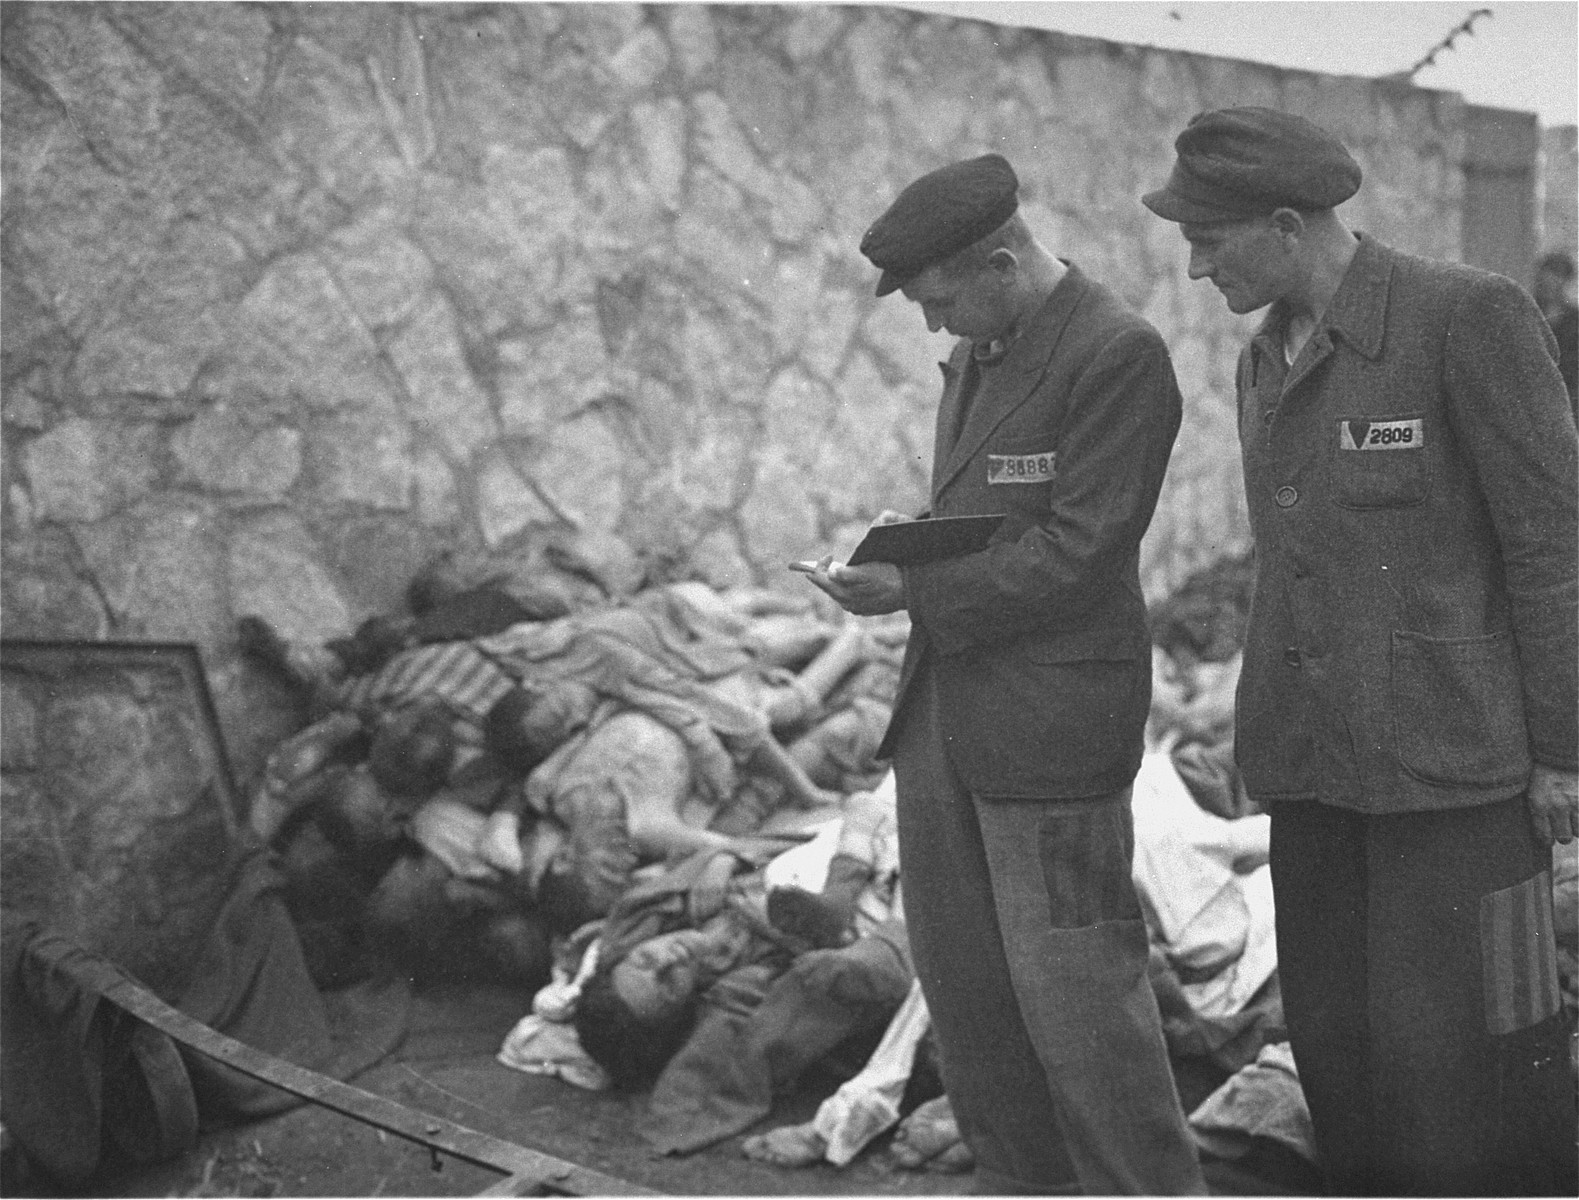 Survivors counting the corpses of prisoners killed in the Mauthausen concentration camp.